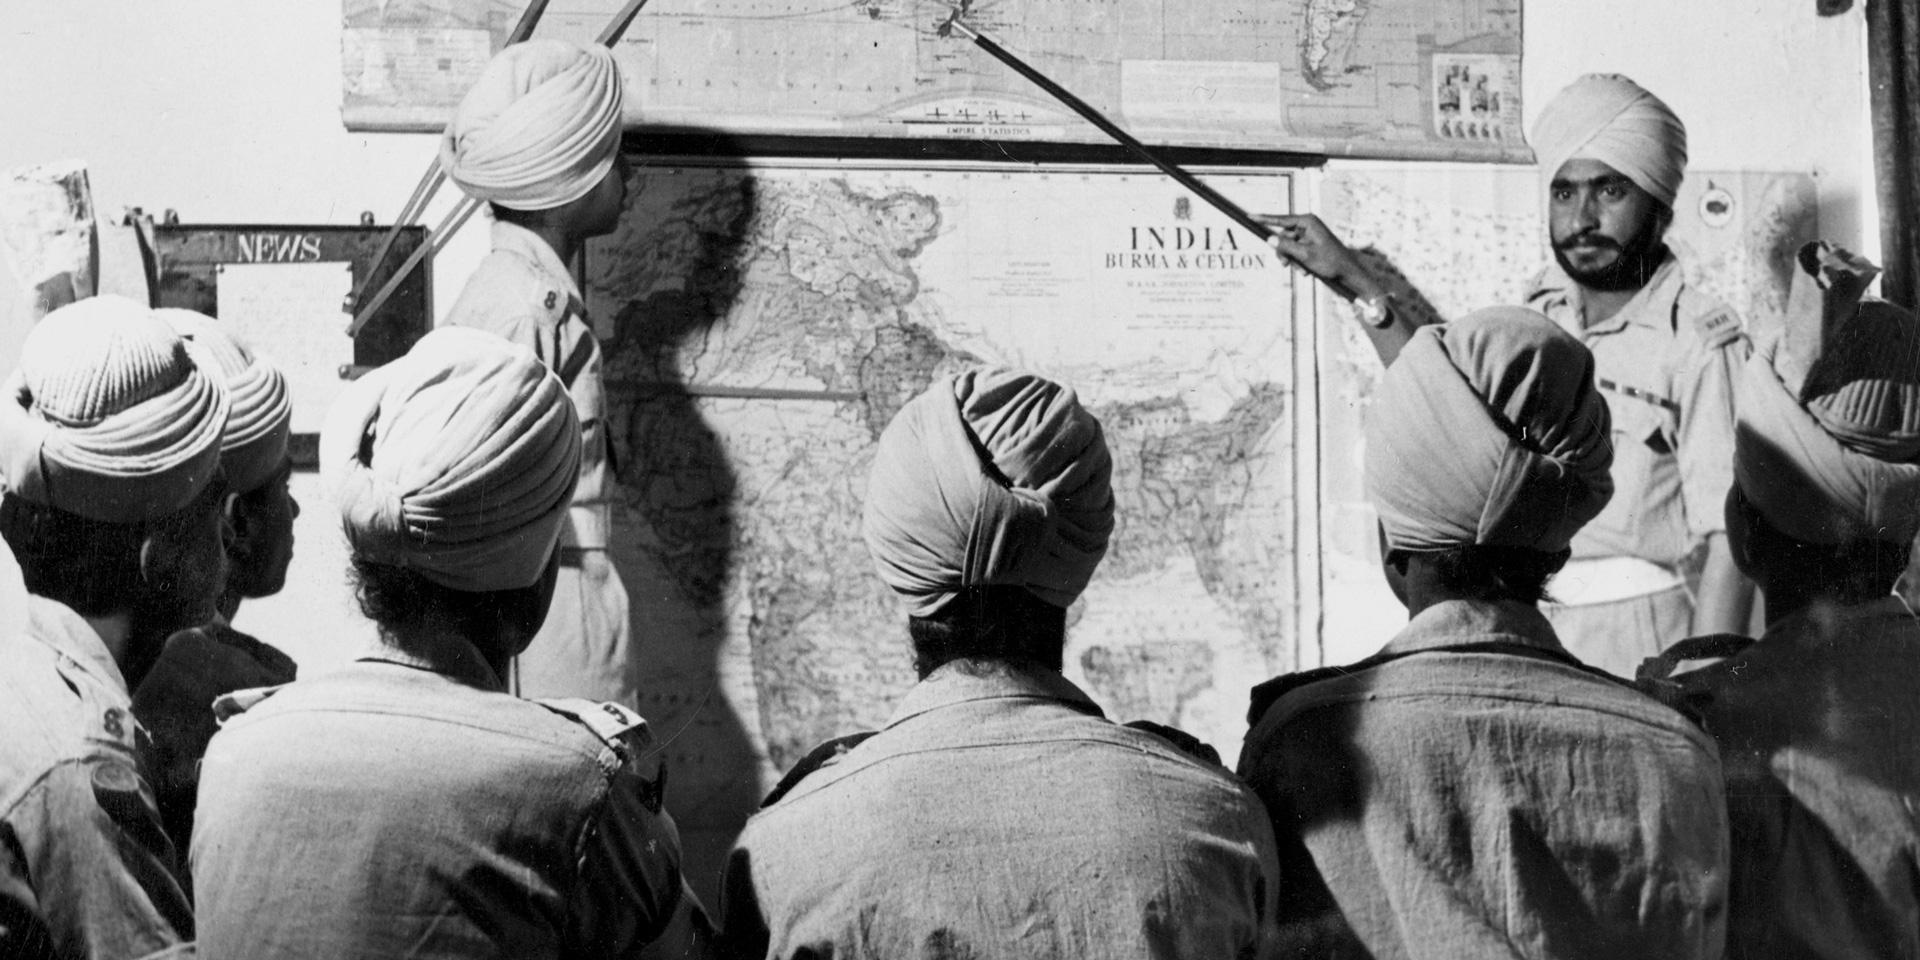 Map briefing for Sikh recruits, 1947